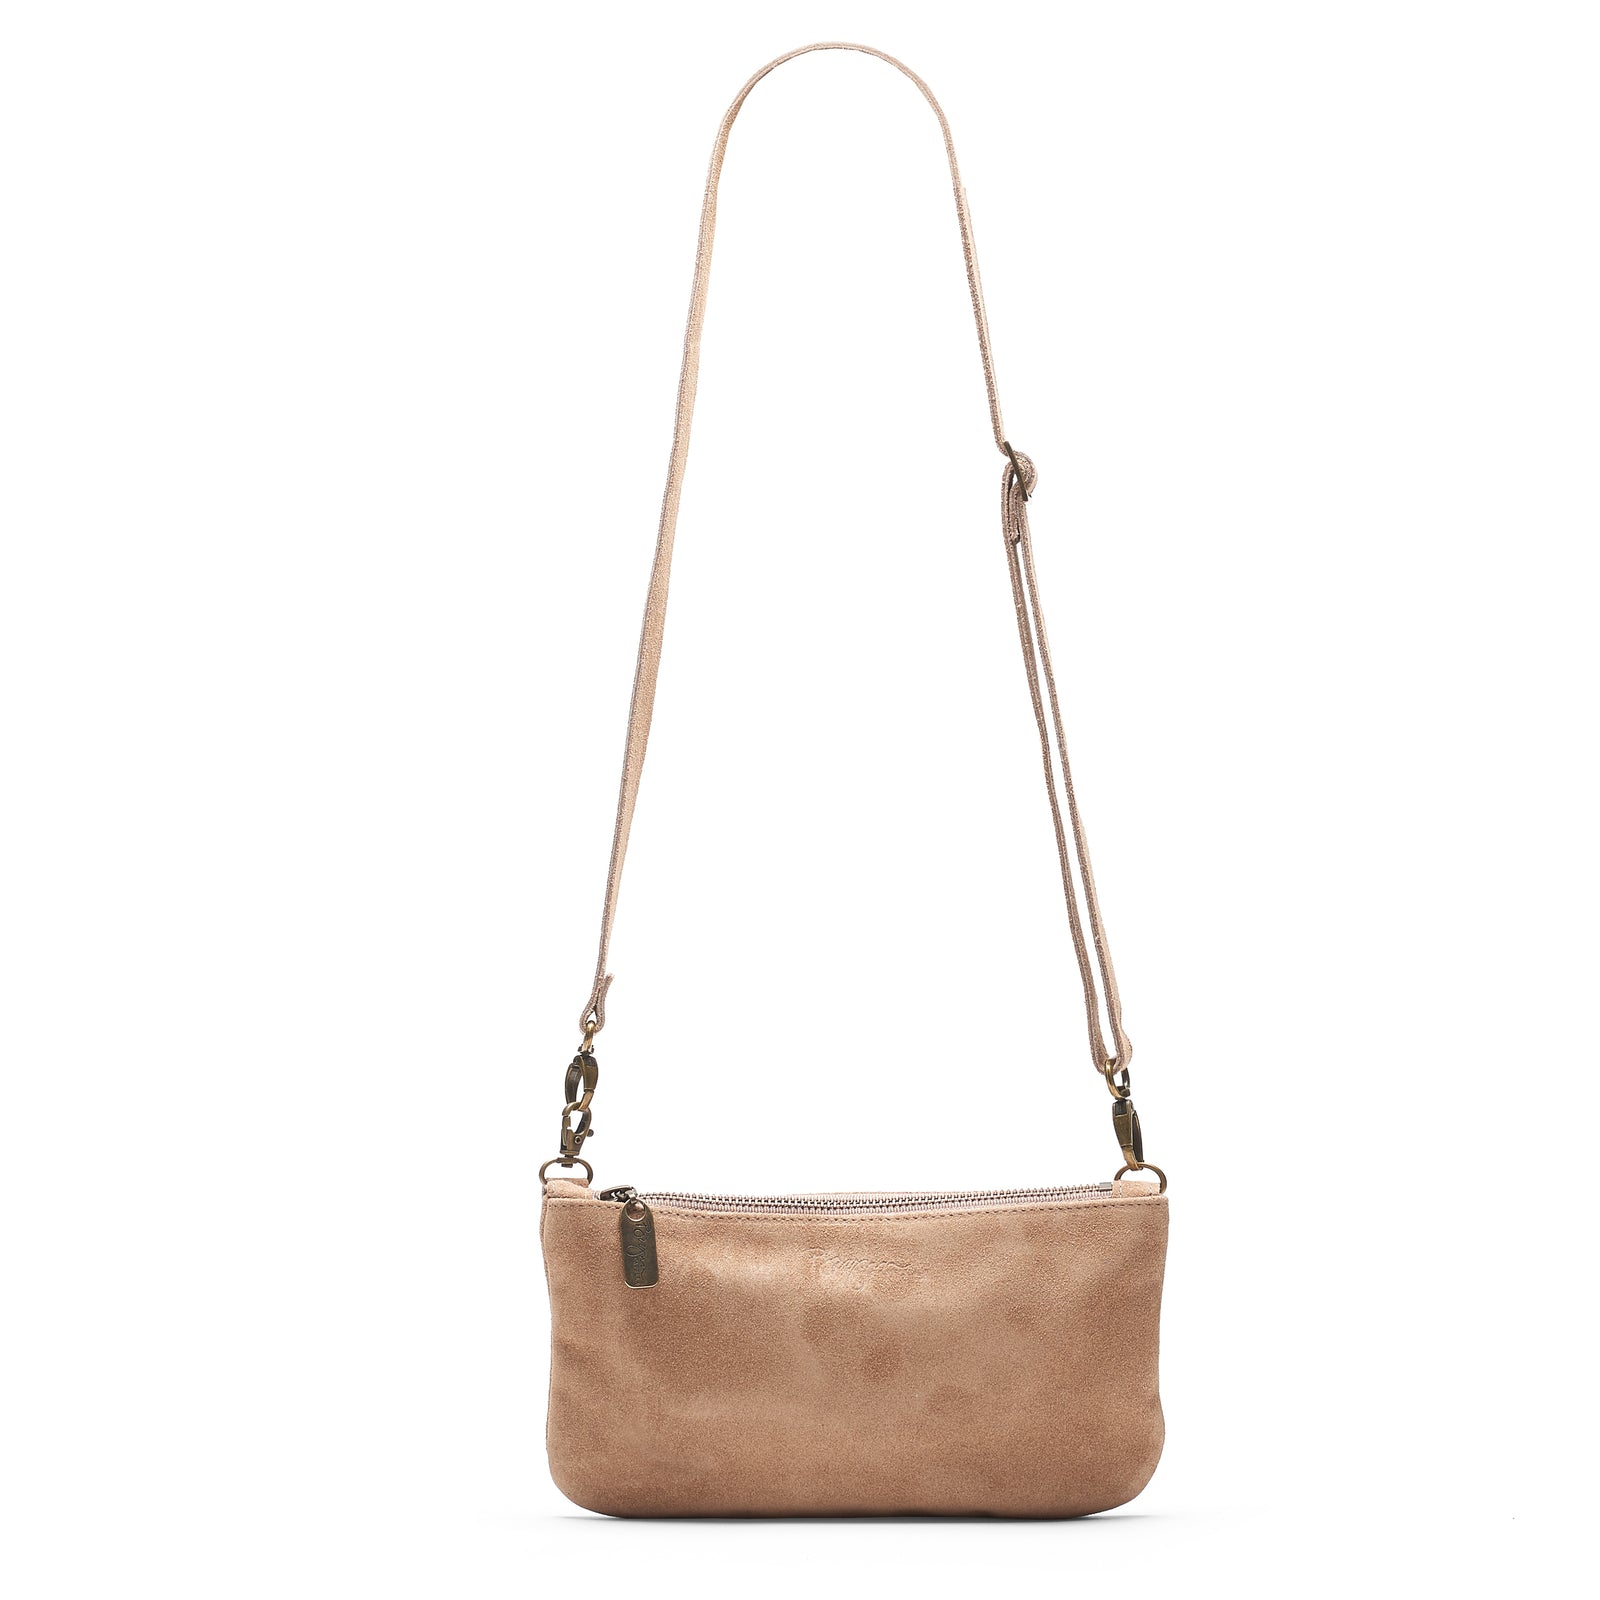 Cher Belt Bag / Crossbody - Fawn - Brynn Capella, Mini Crossbody